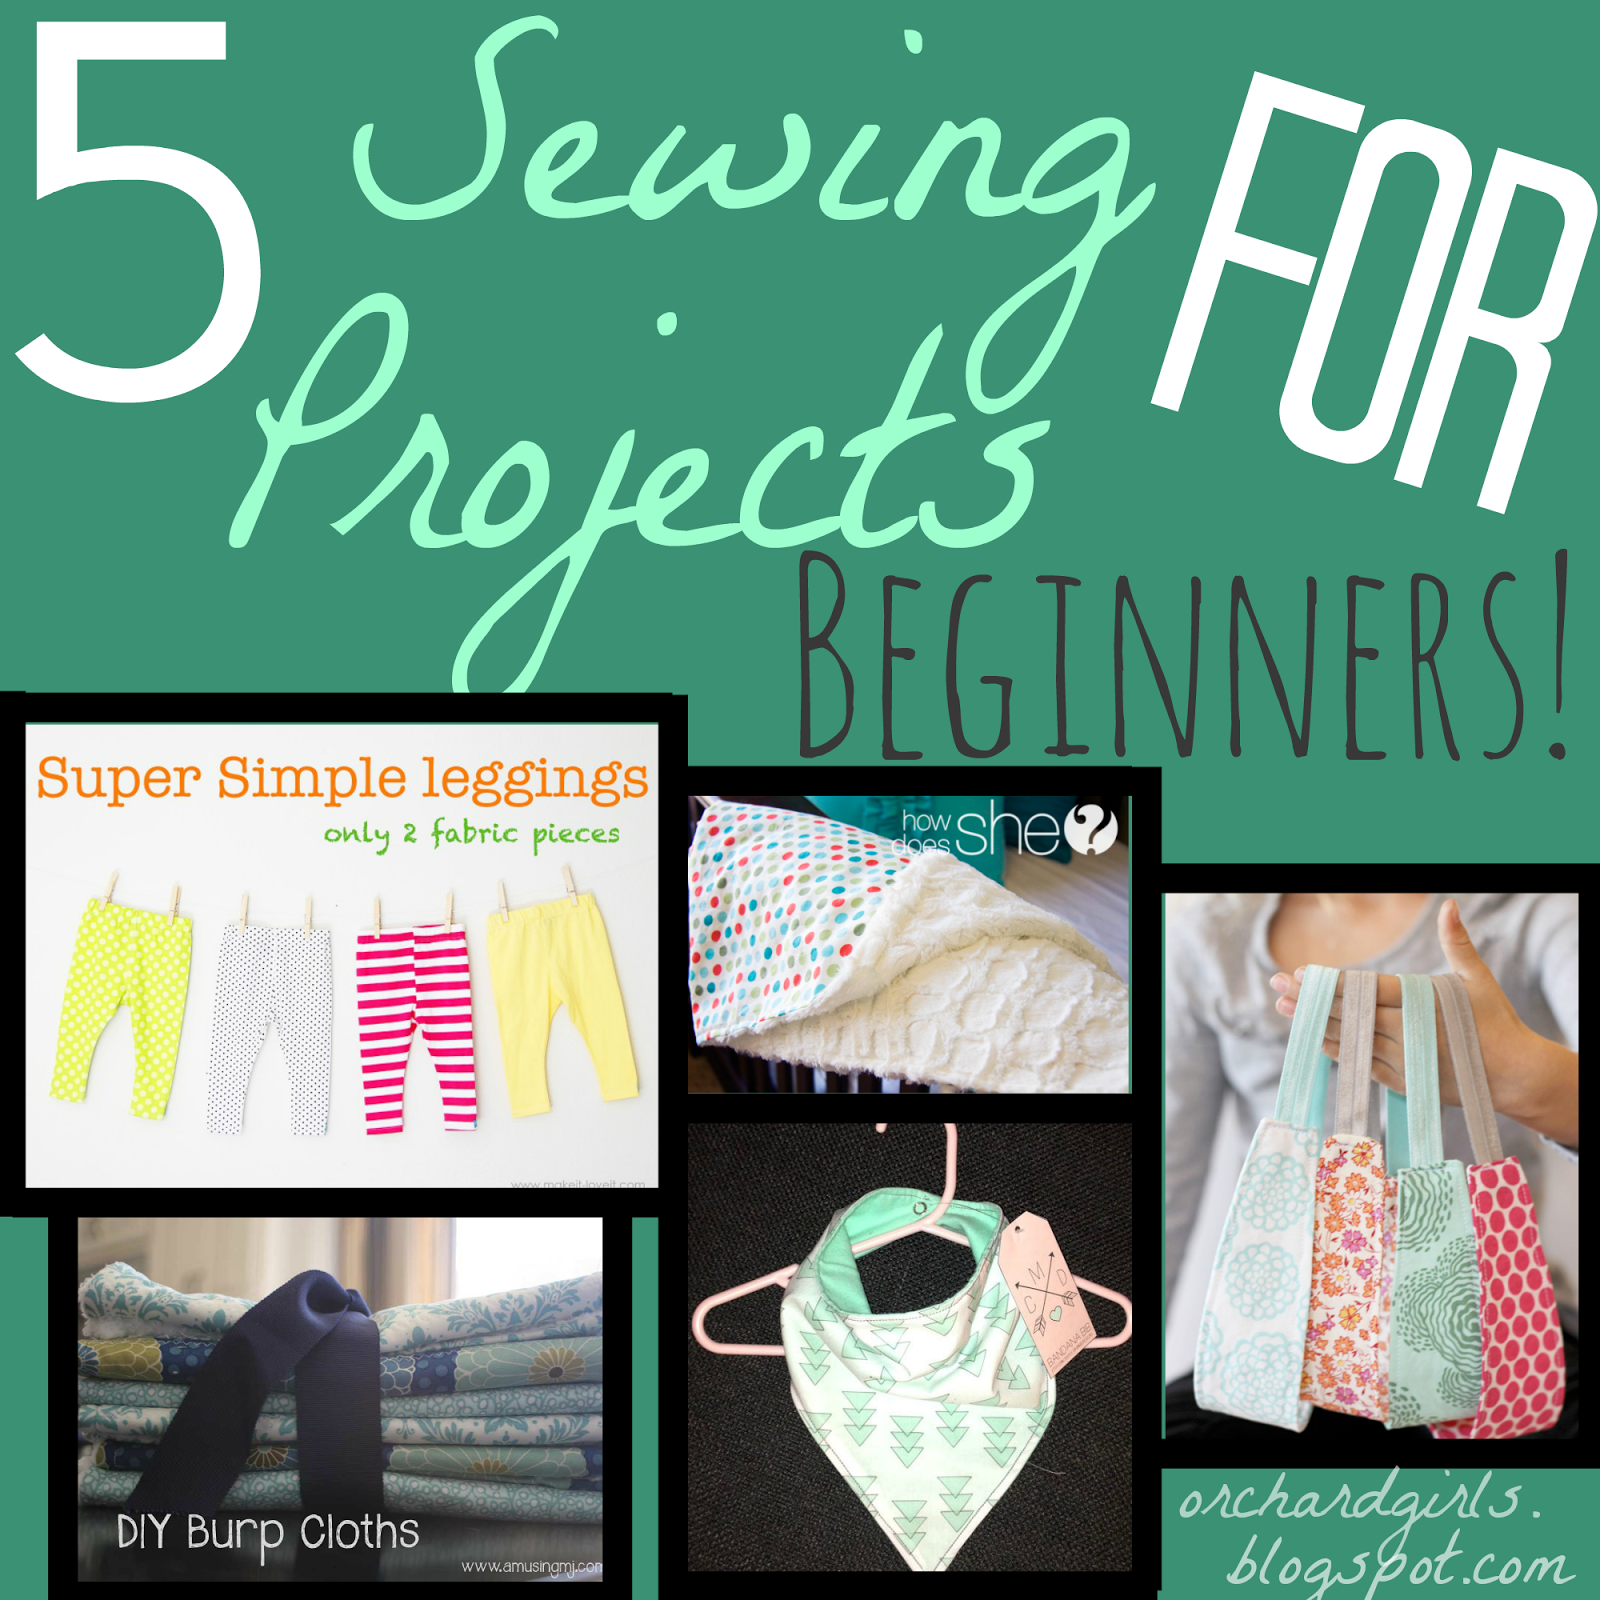 5 Sewing Projects for Begginers